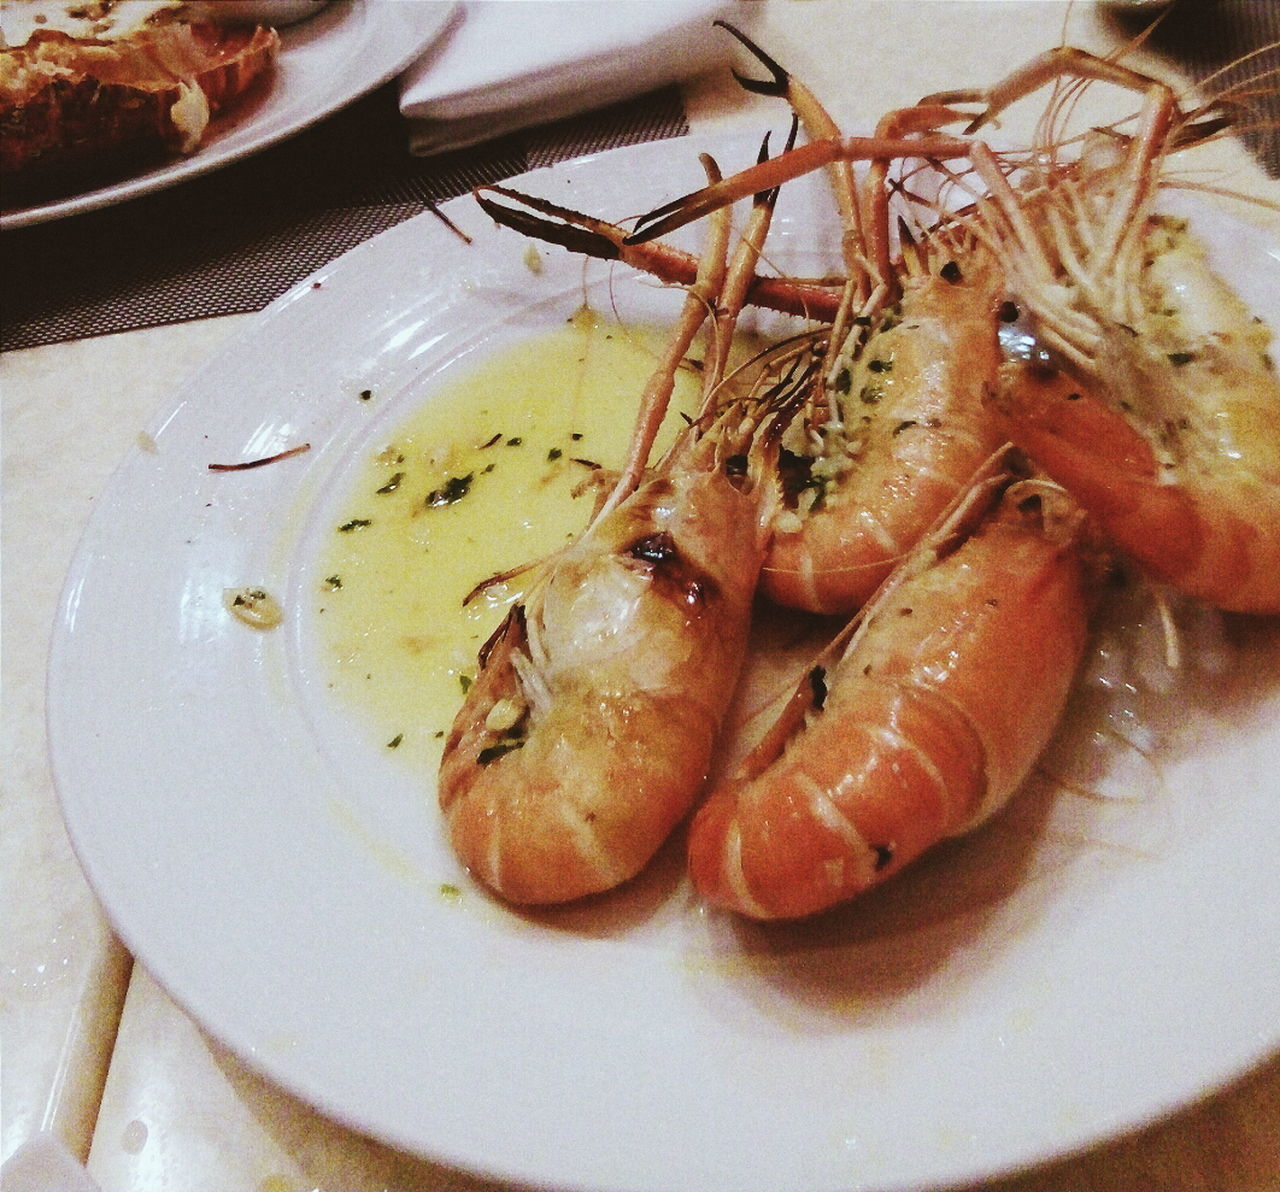 At New World Hotel. Buffet Shrimps Vscocam Relaxing Family Hanging Out